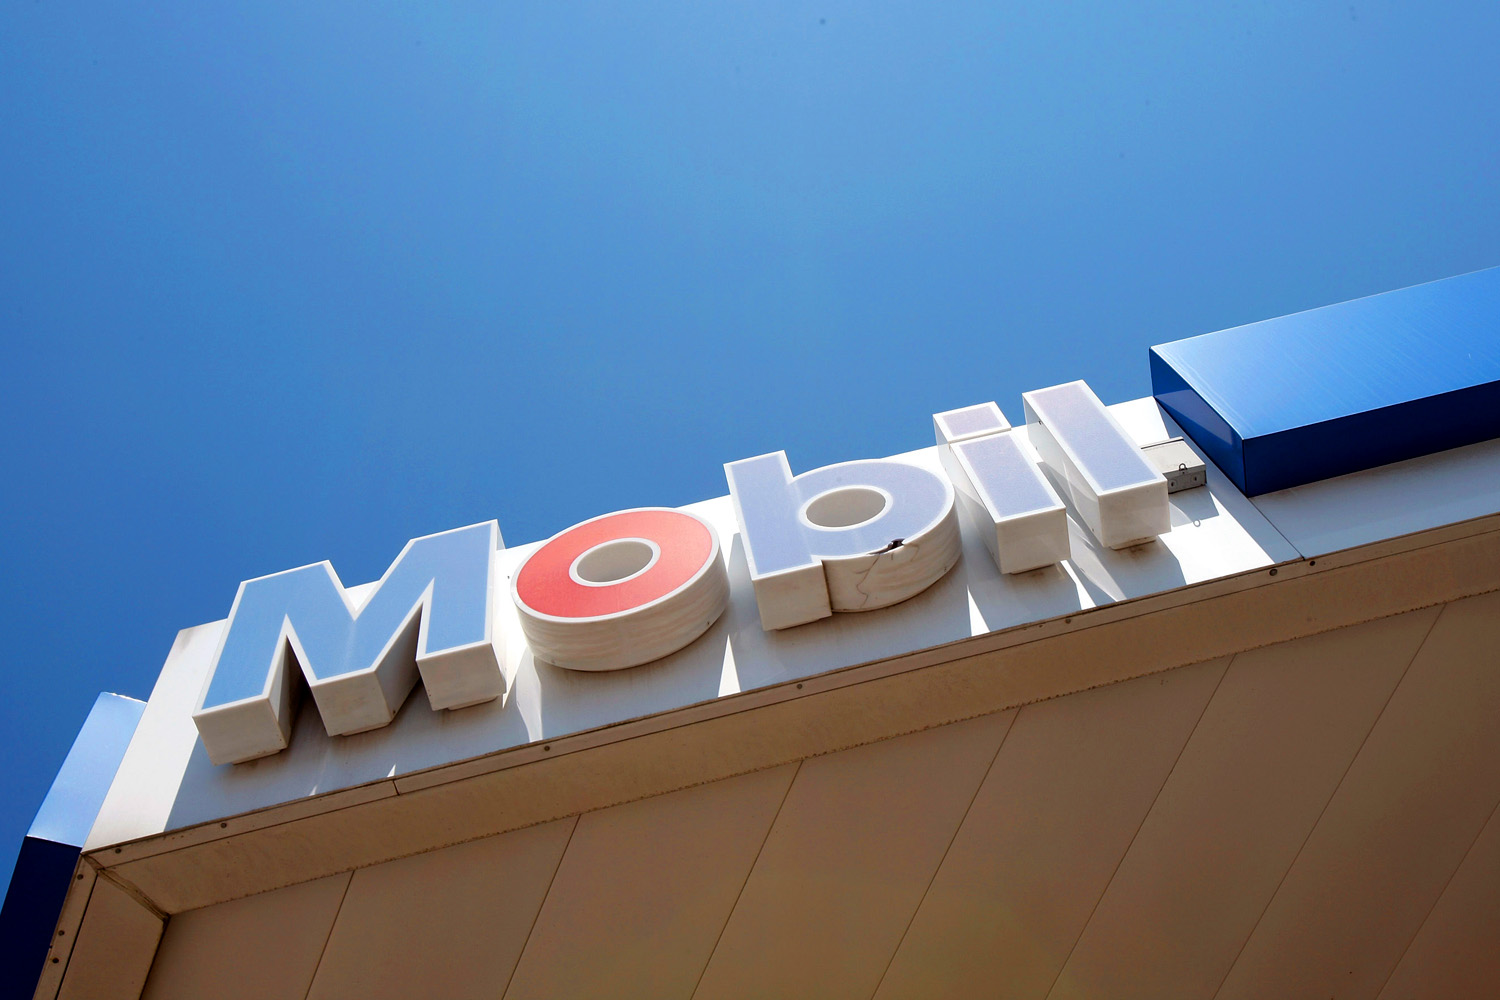 exxon mobile corp v allapattah services Exxon mobil corp v allapattah services facts: these are consolidated cases that concern gasoline dealers and their suppliers in each of these diversity class actions, the dealers allege that the supplier breached their sales agreement at issue here is the statutory interpretation of 28 usc section 1367, which covers the amount in controversy requirement for class action law suits.